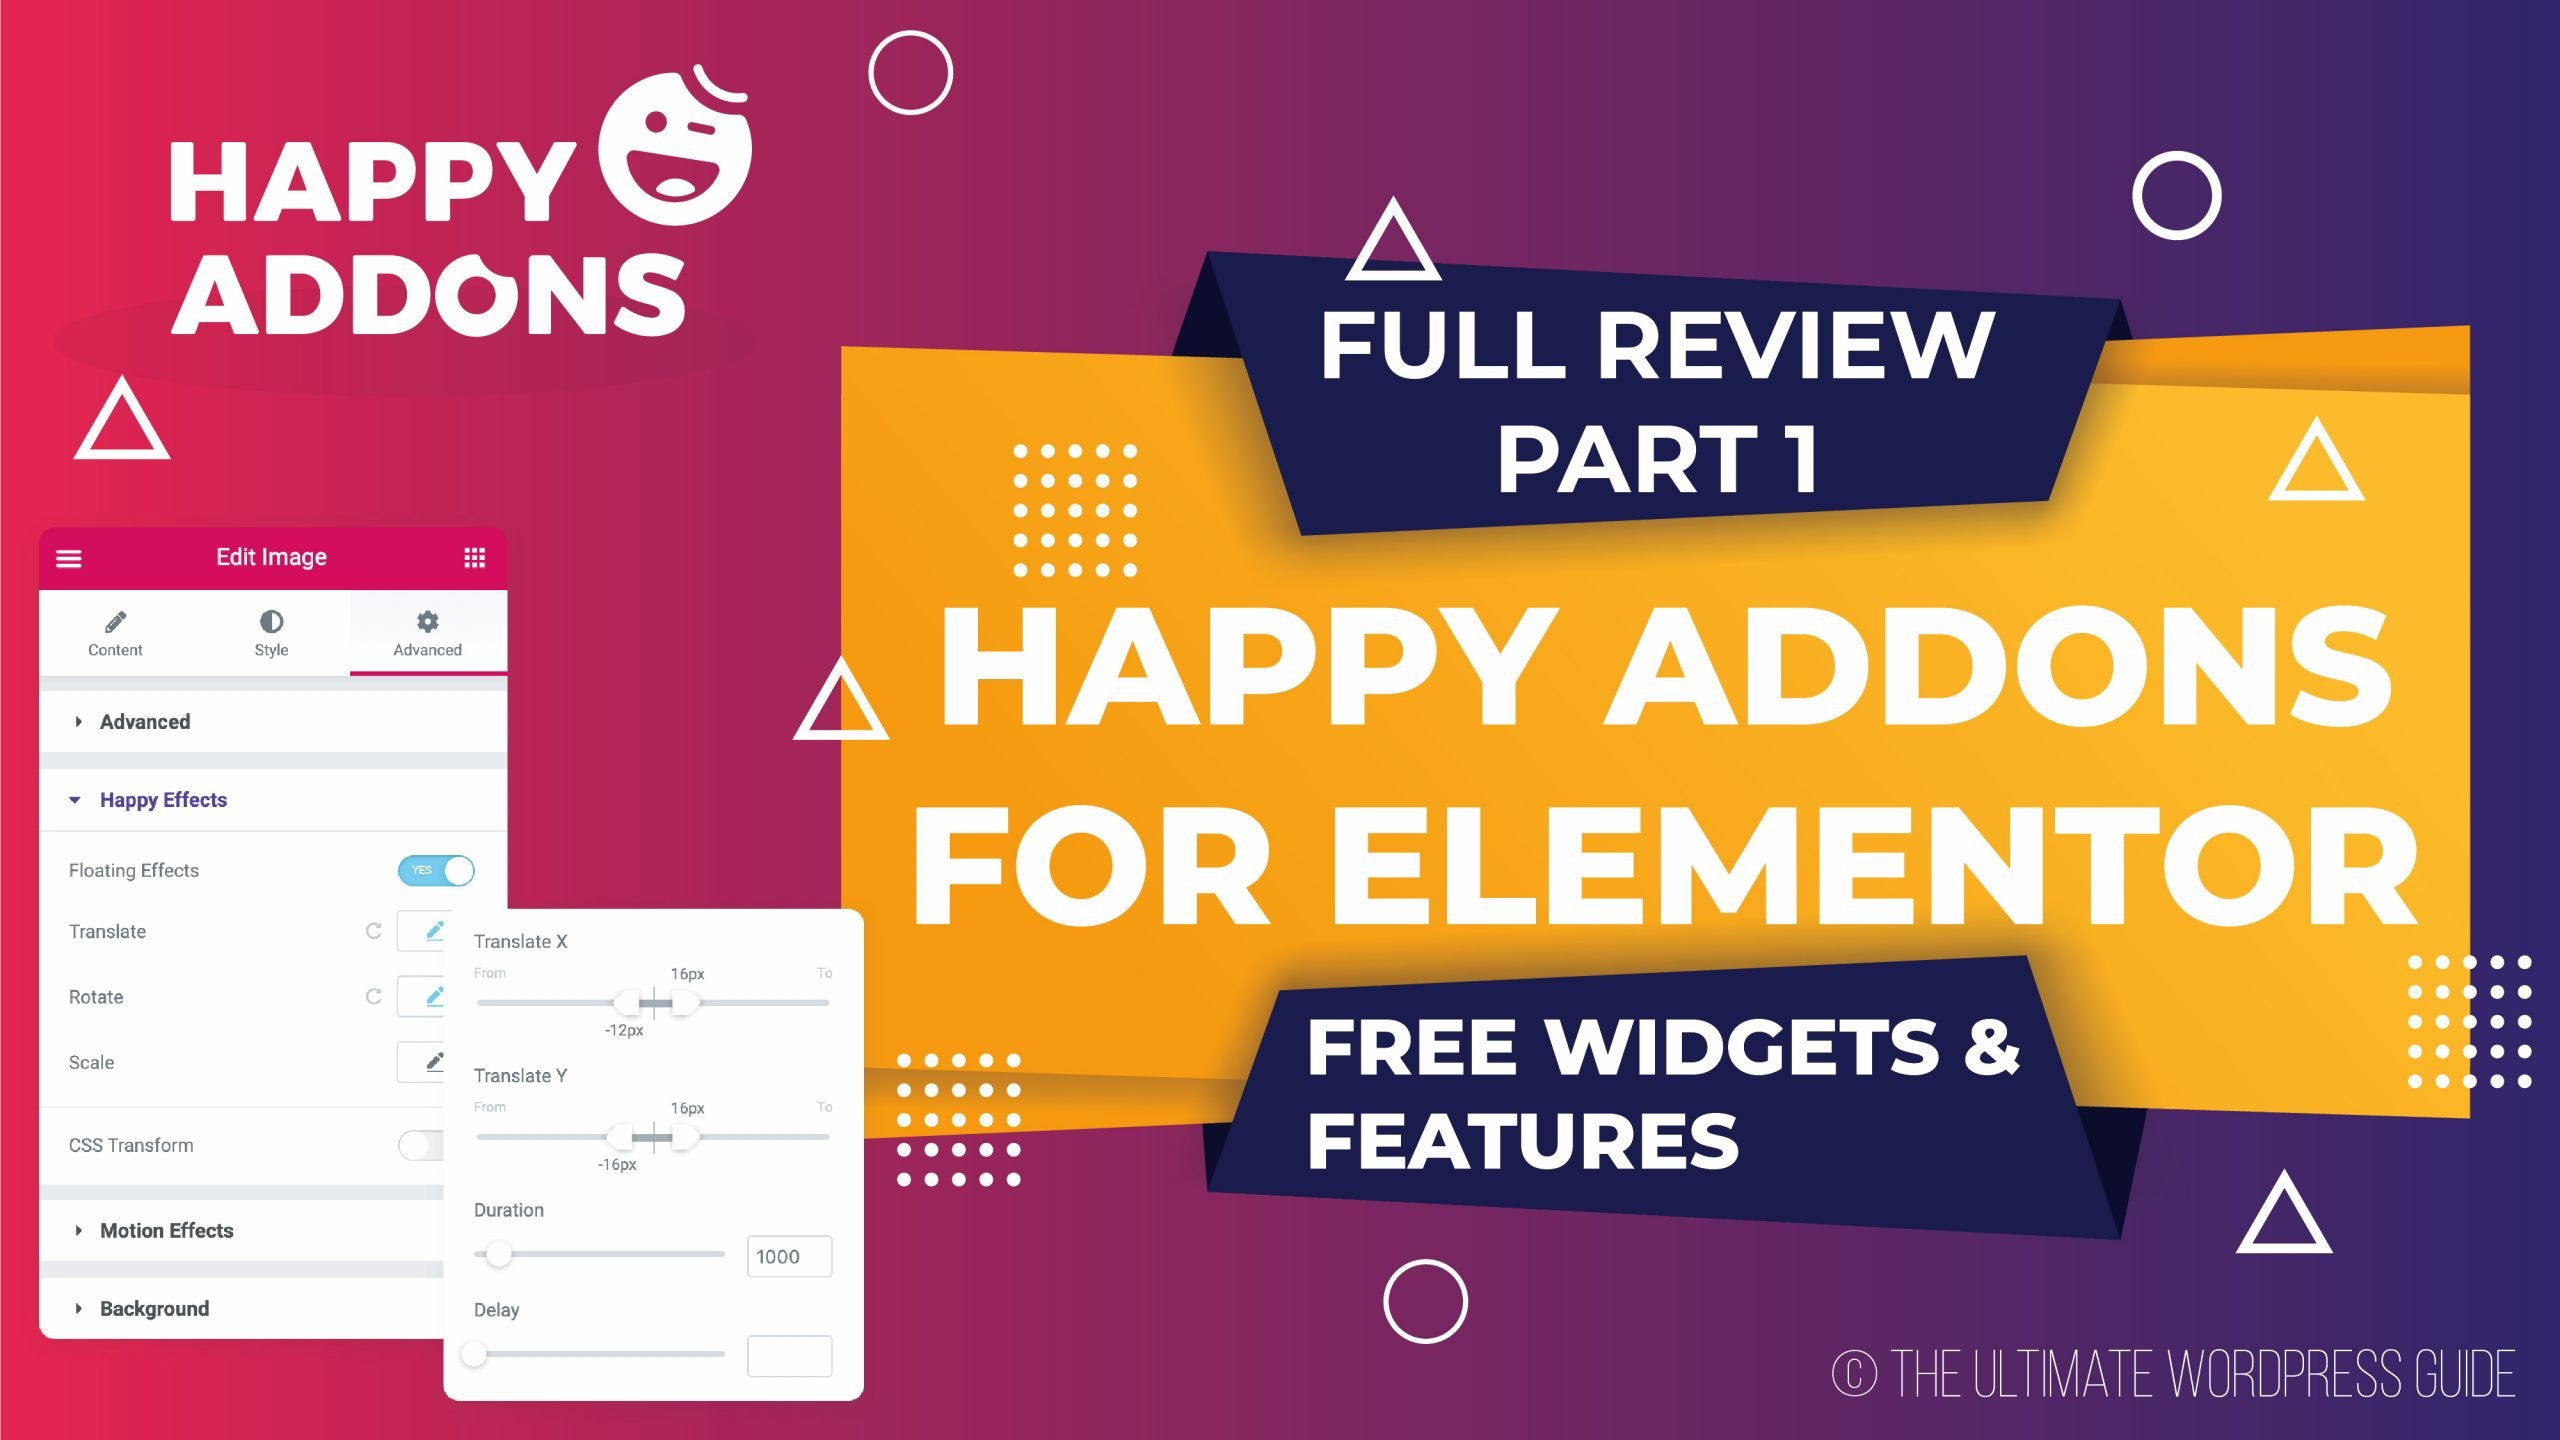 Happy Addons for Elementor - Free Widgets & Features